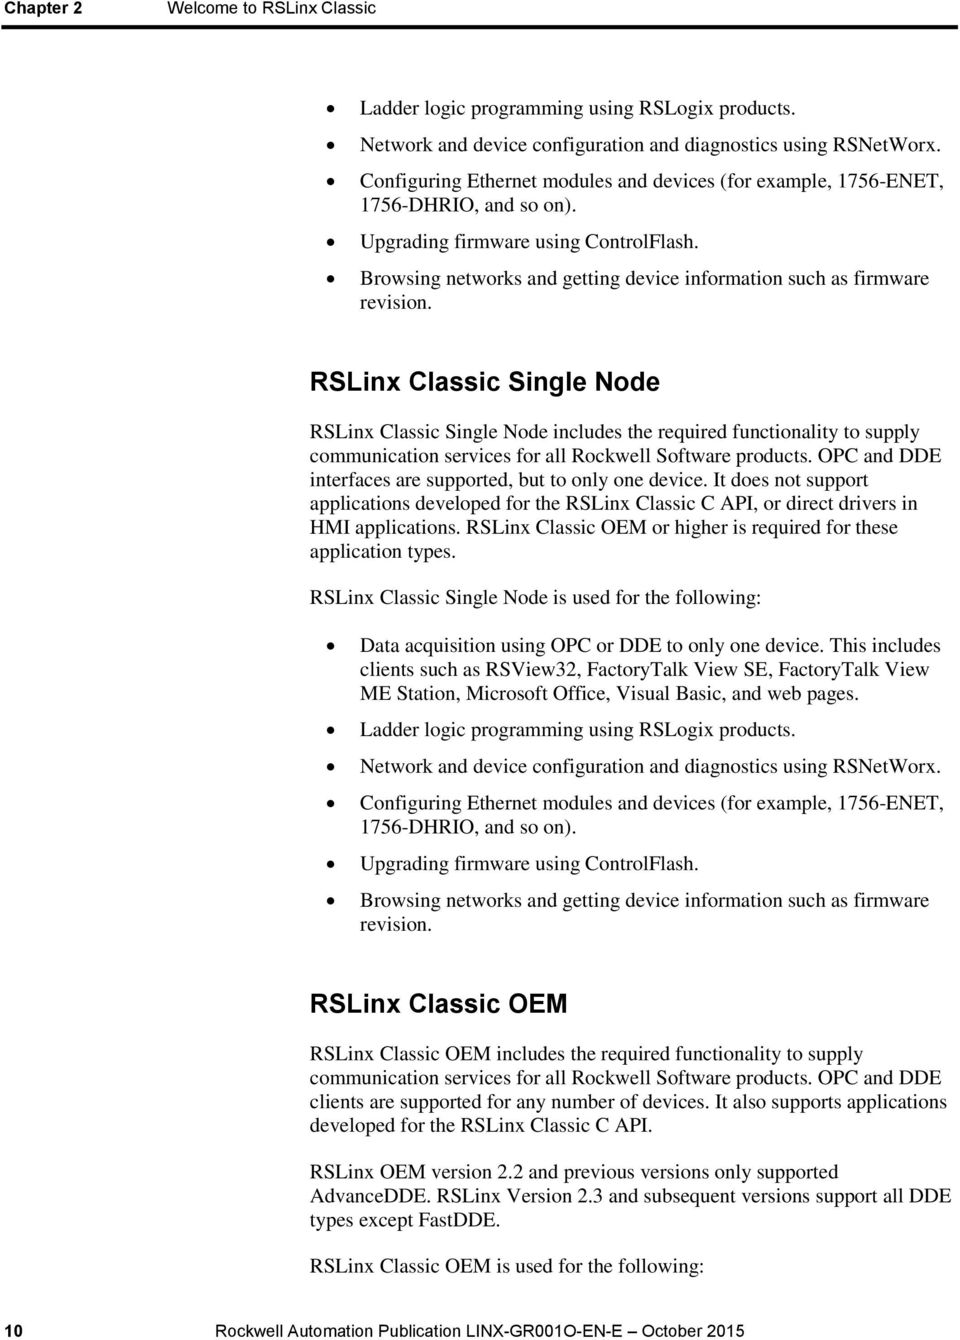 RSLinx Classic Getting Results Guide - PDF